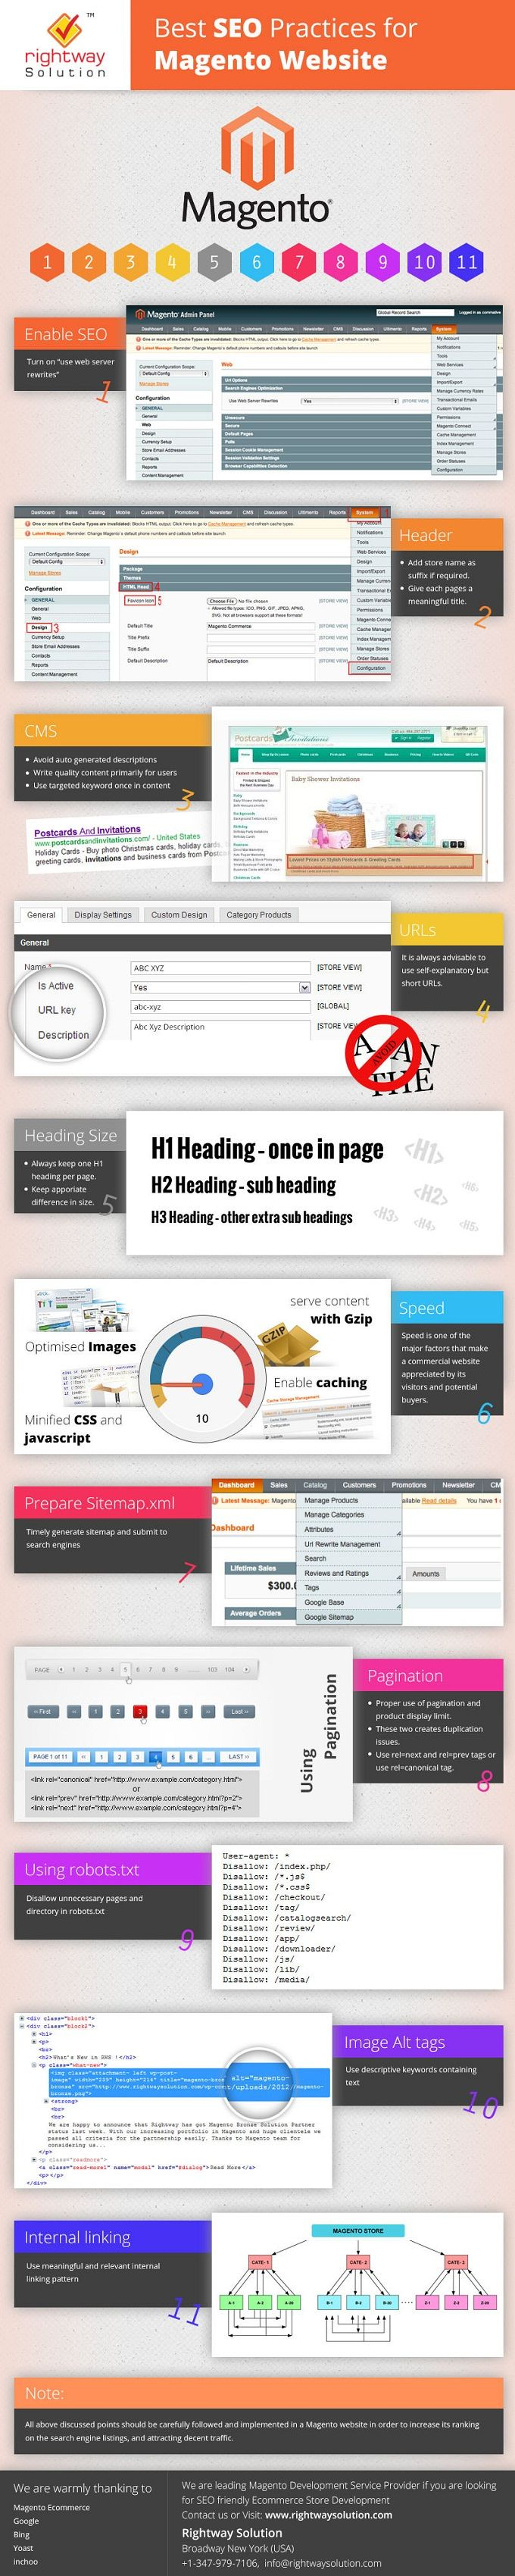 Best SEO Practices for Magento Store Development [Infographic]